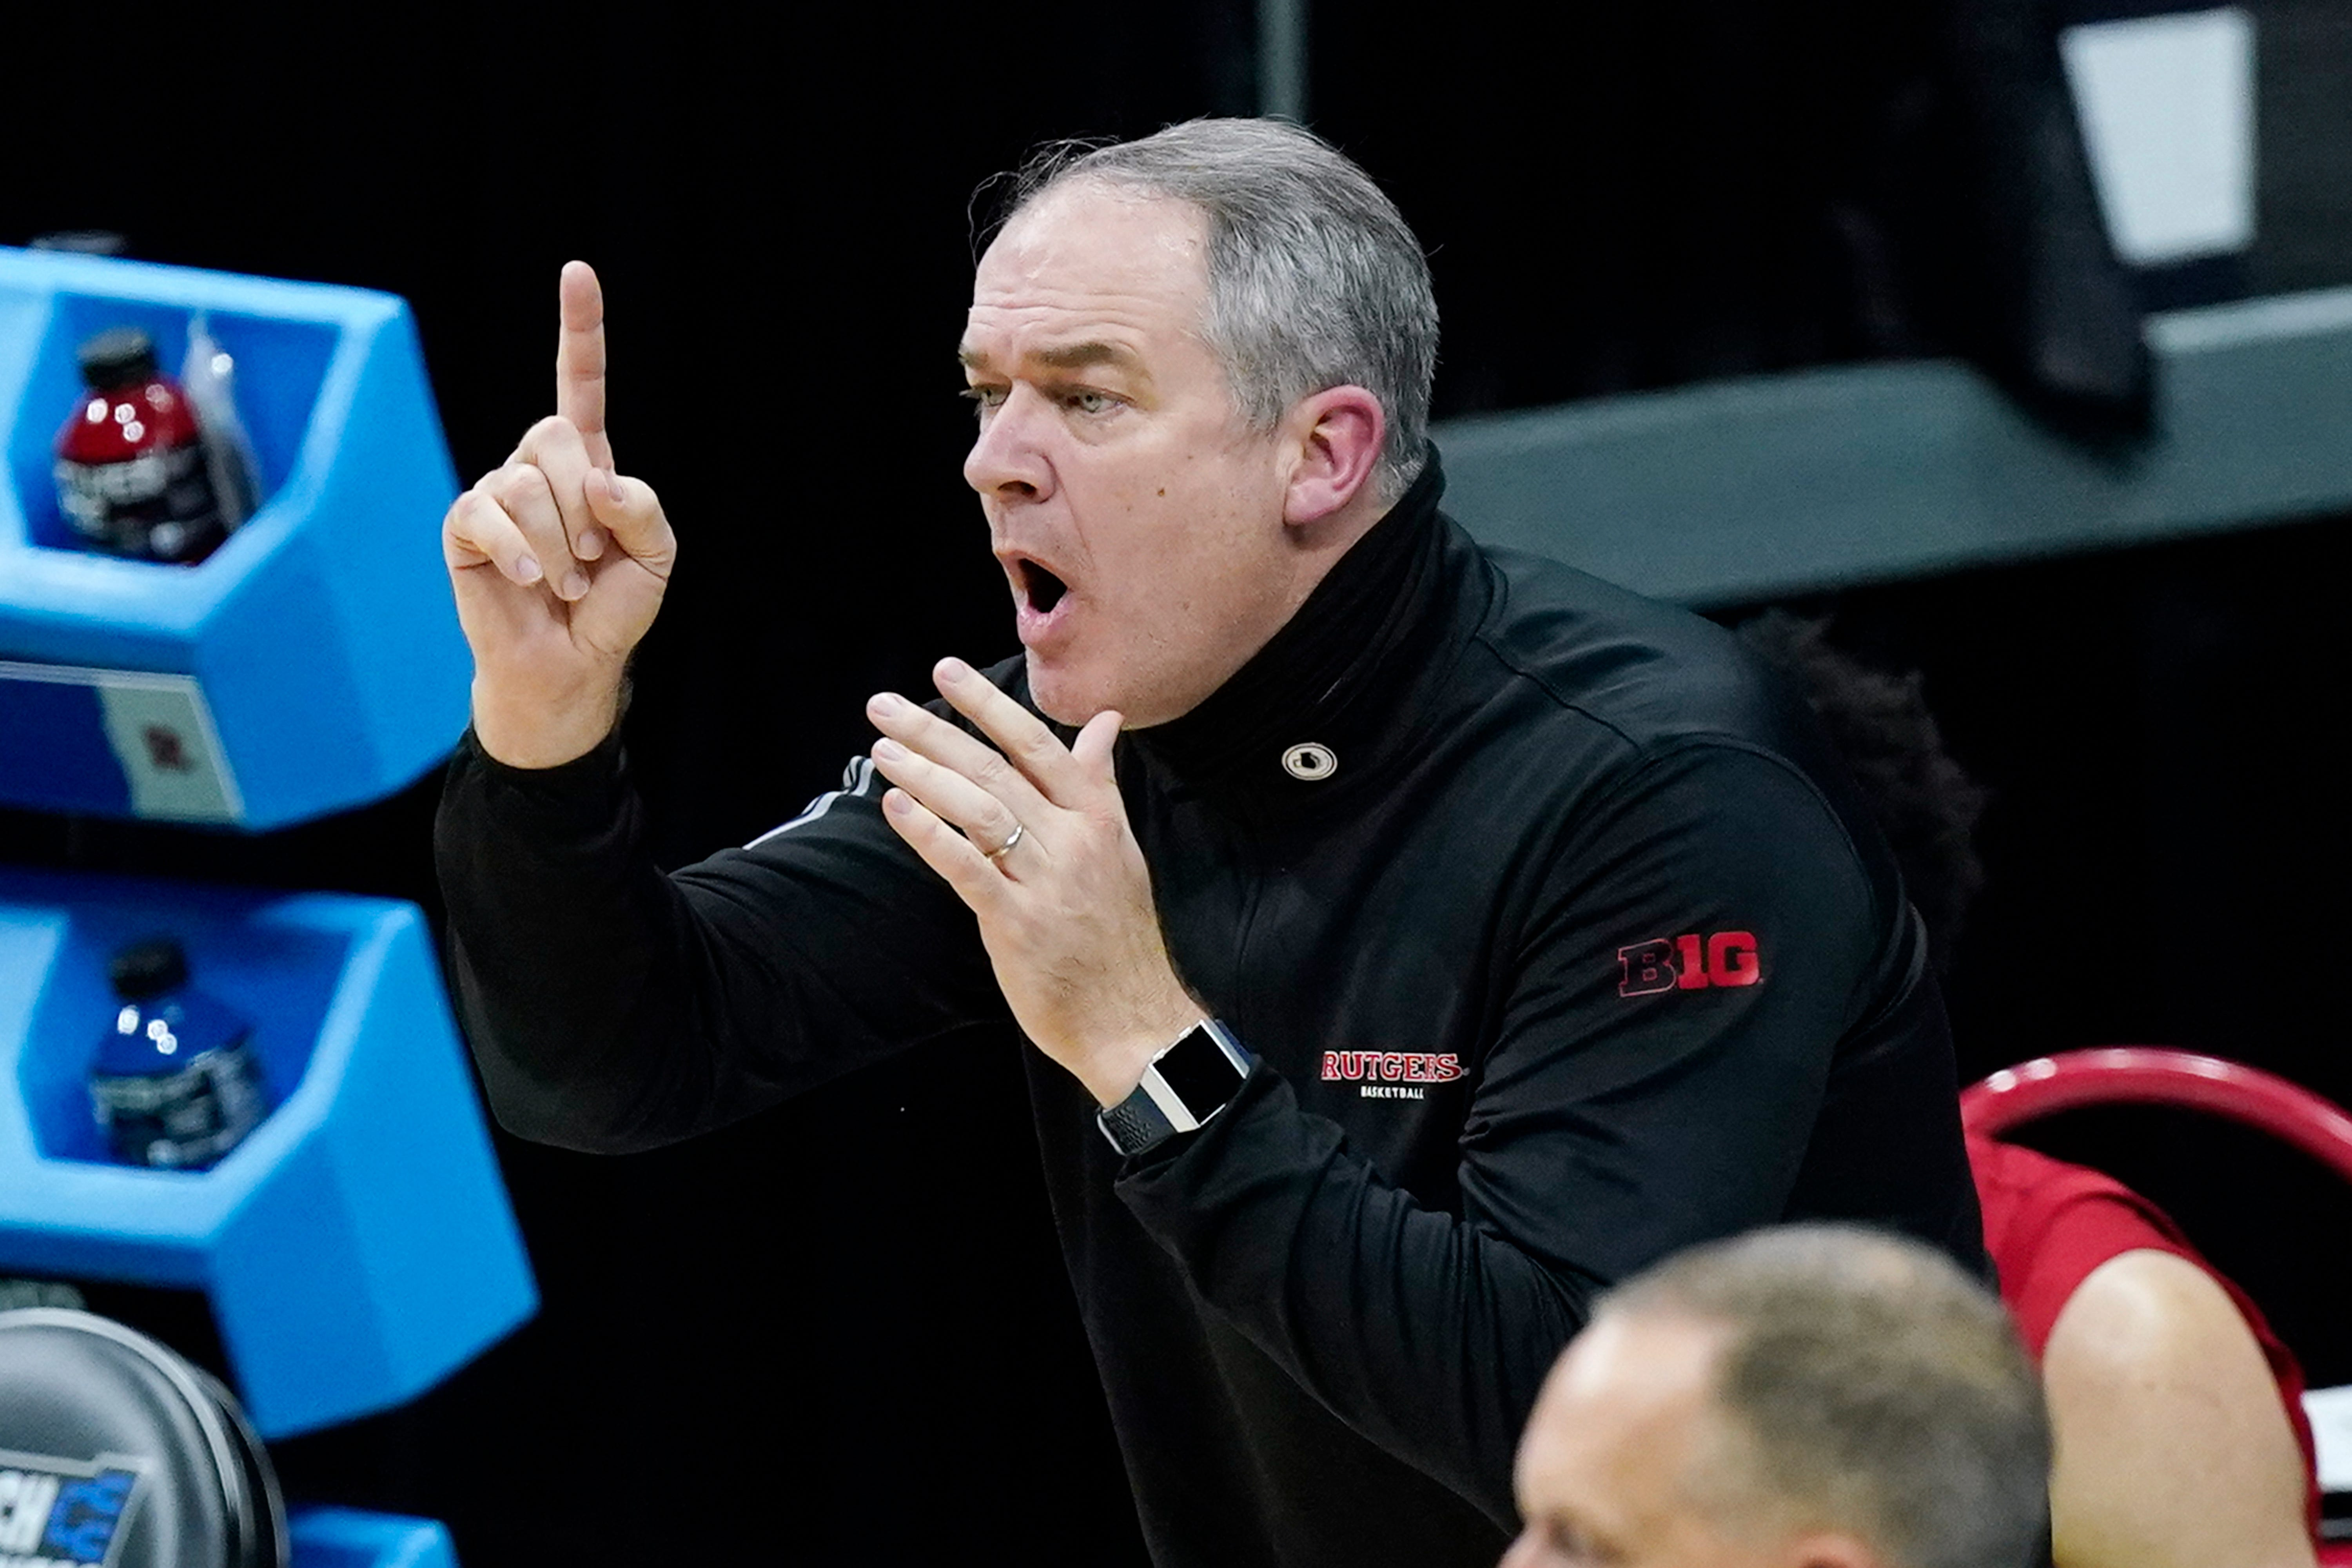 Rutgers men's basketball coach Steve Pikiell yells to his players during a game against Houston in the second round of the NCAA tournament in March.